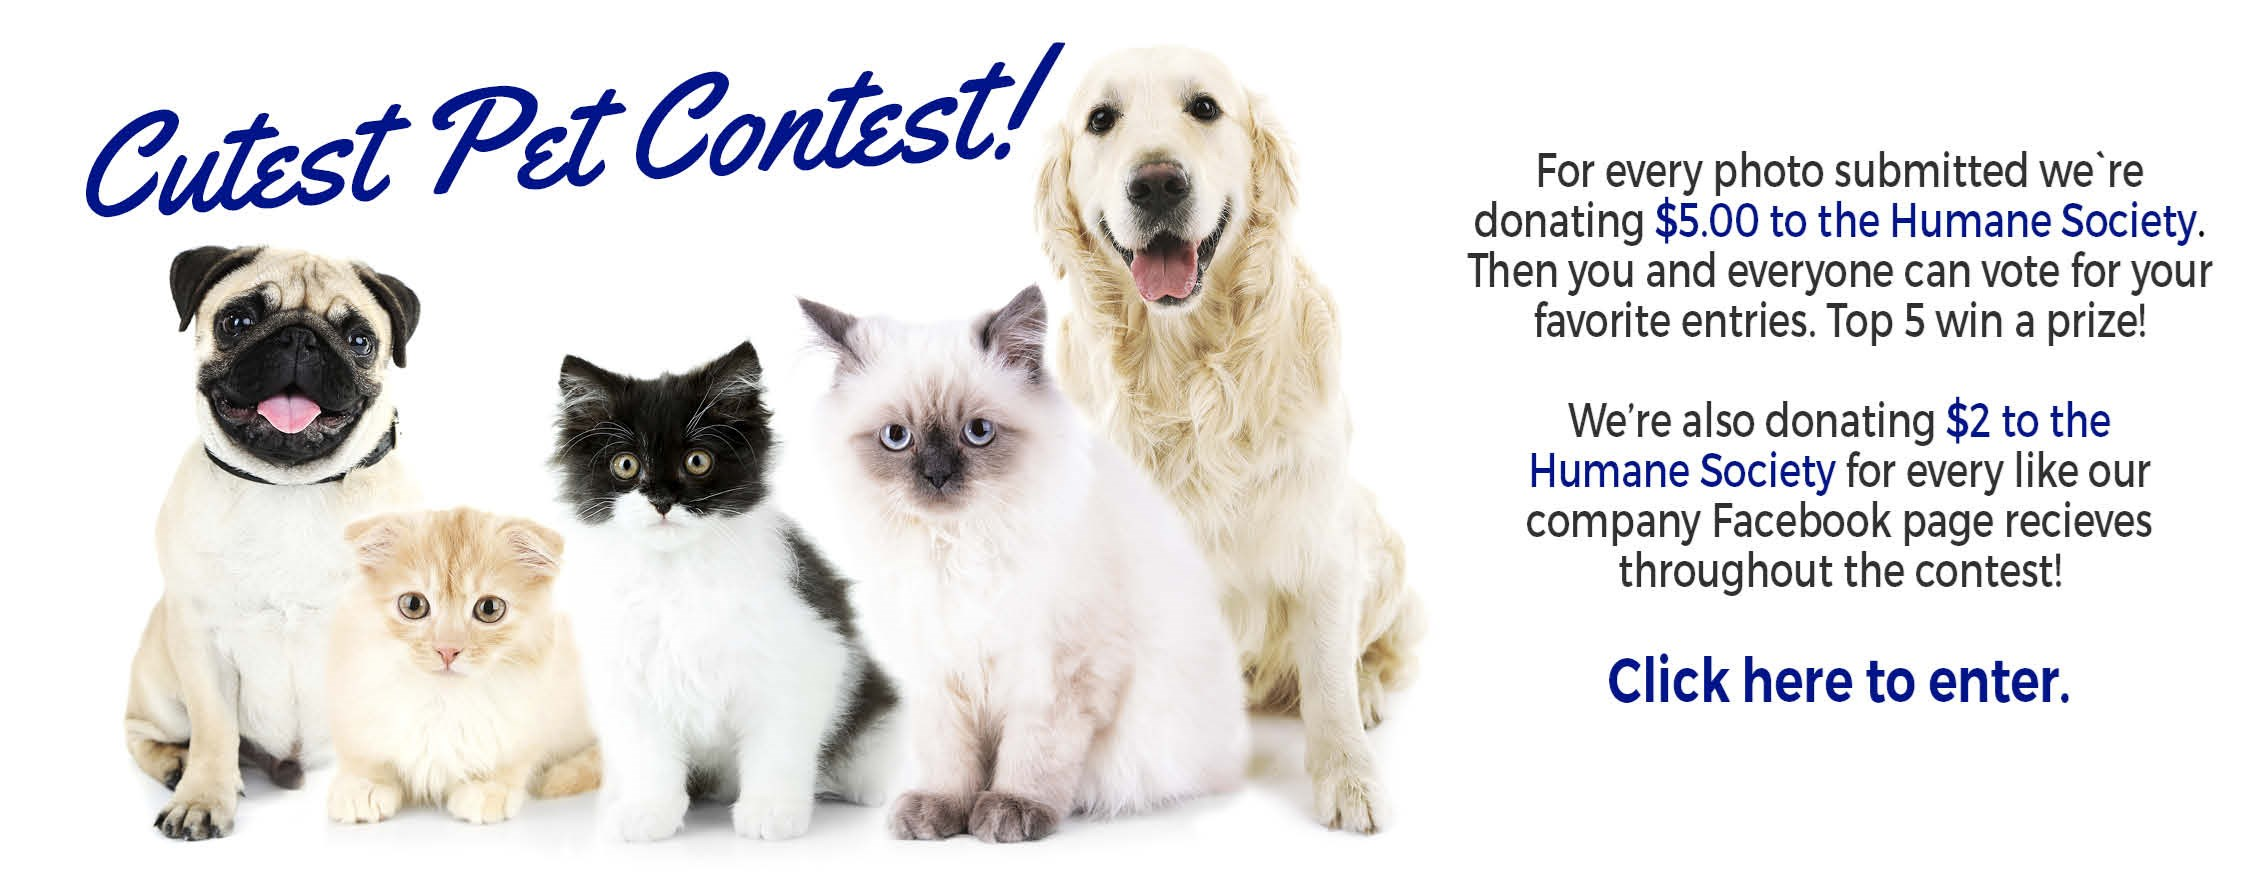 Cutest Pet Contest!